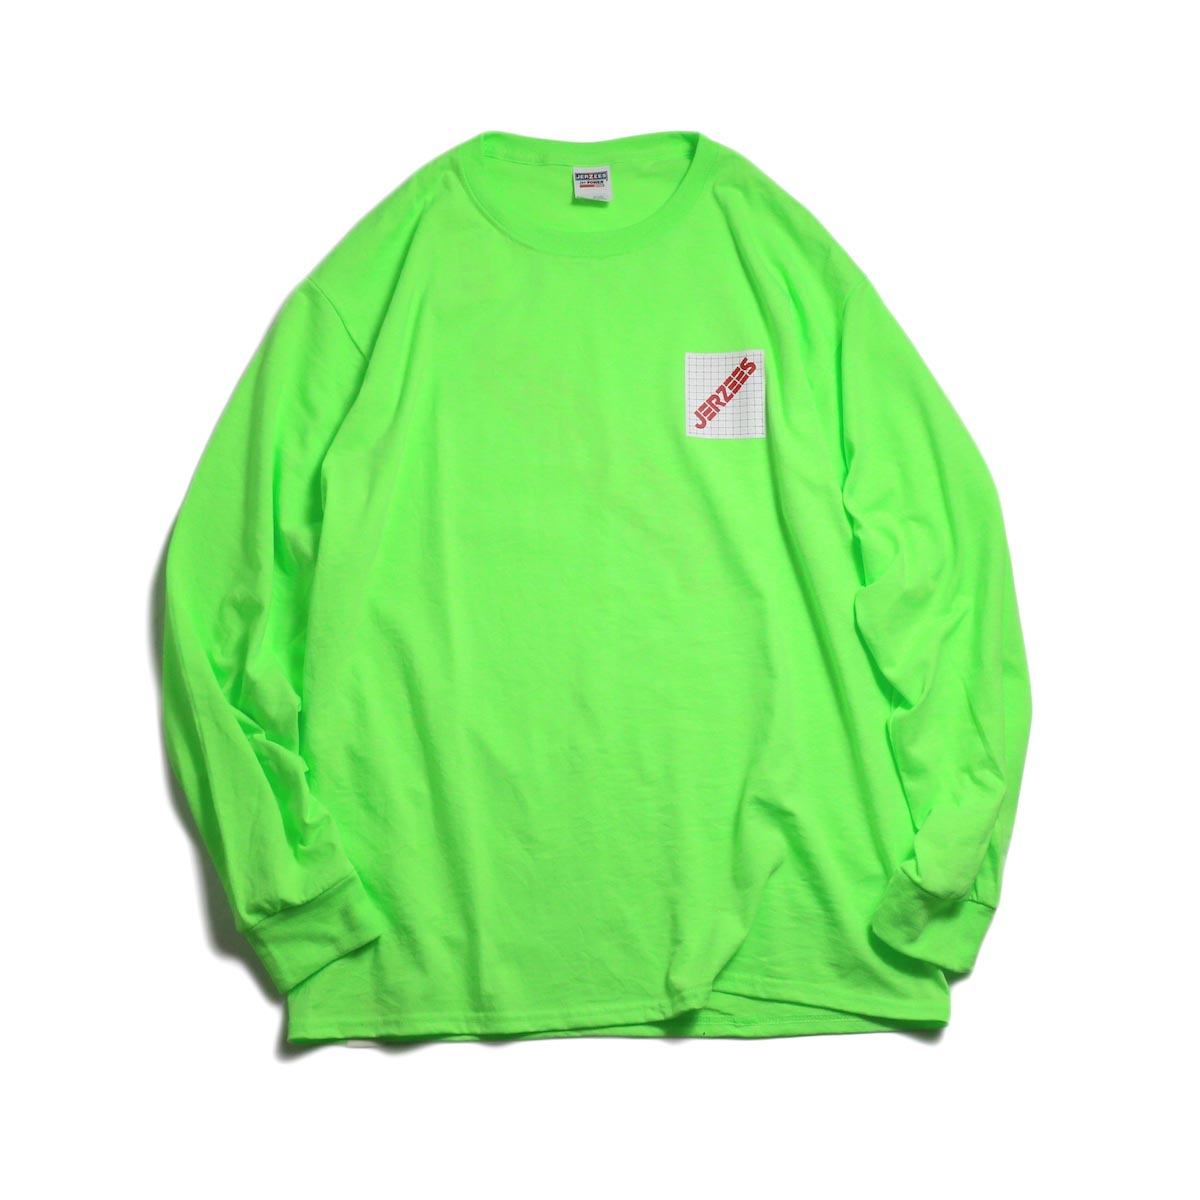 N.HOOLYWOOD × JERZEES  / 191-CS43-070 Long Sleeve Tee -Green